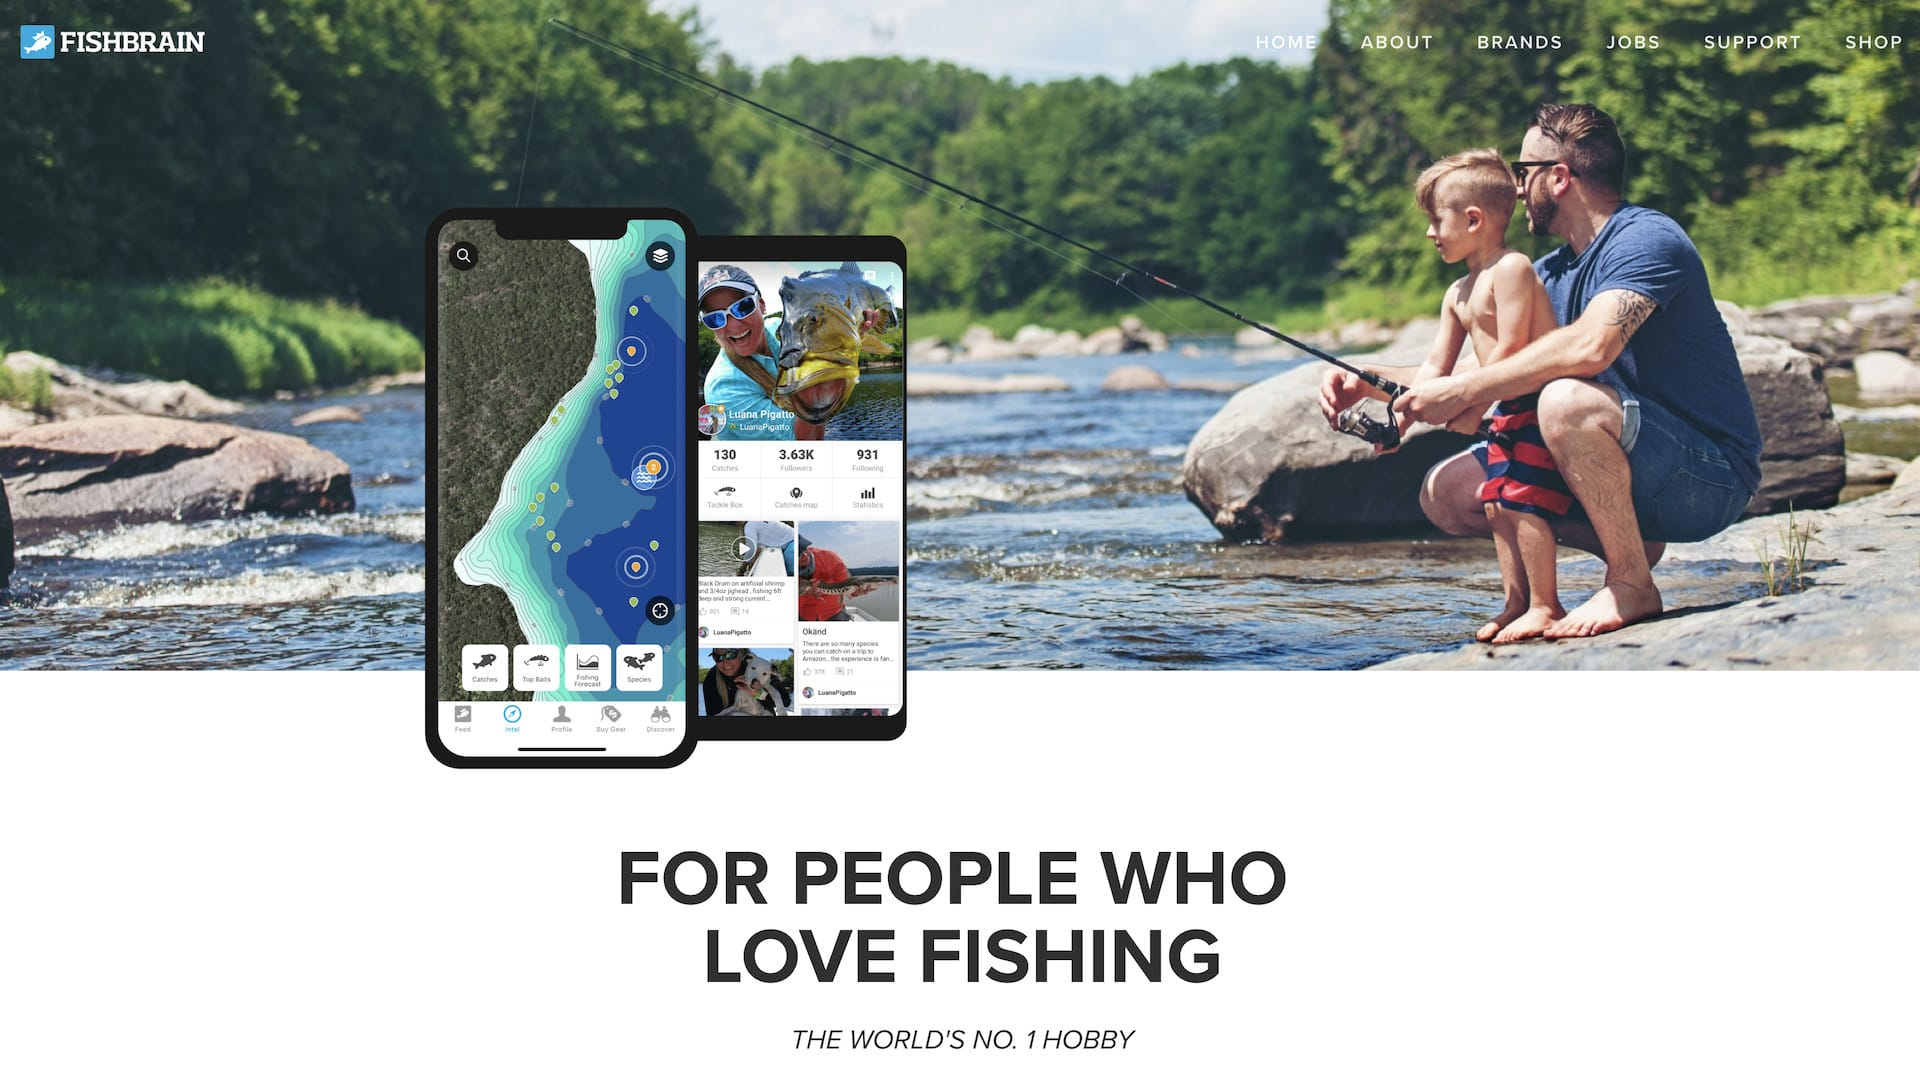 fishbrain best fishing app